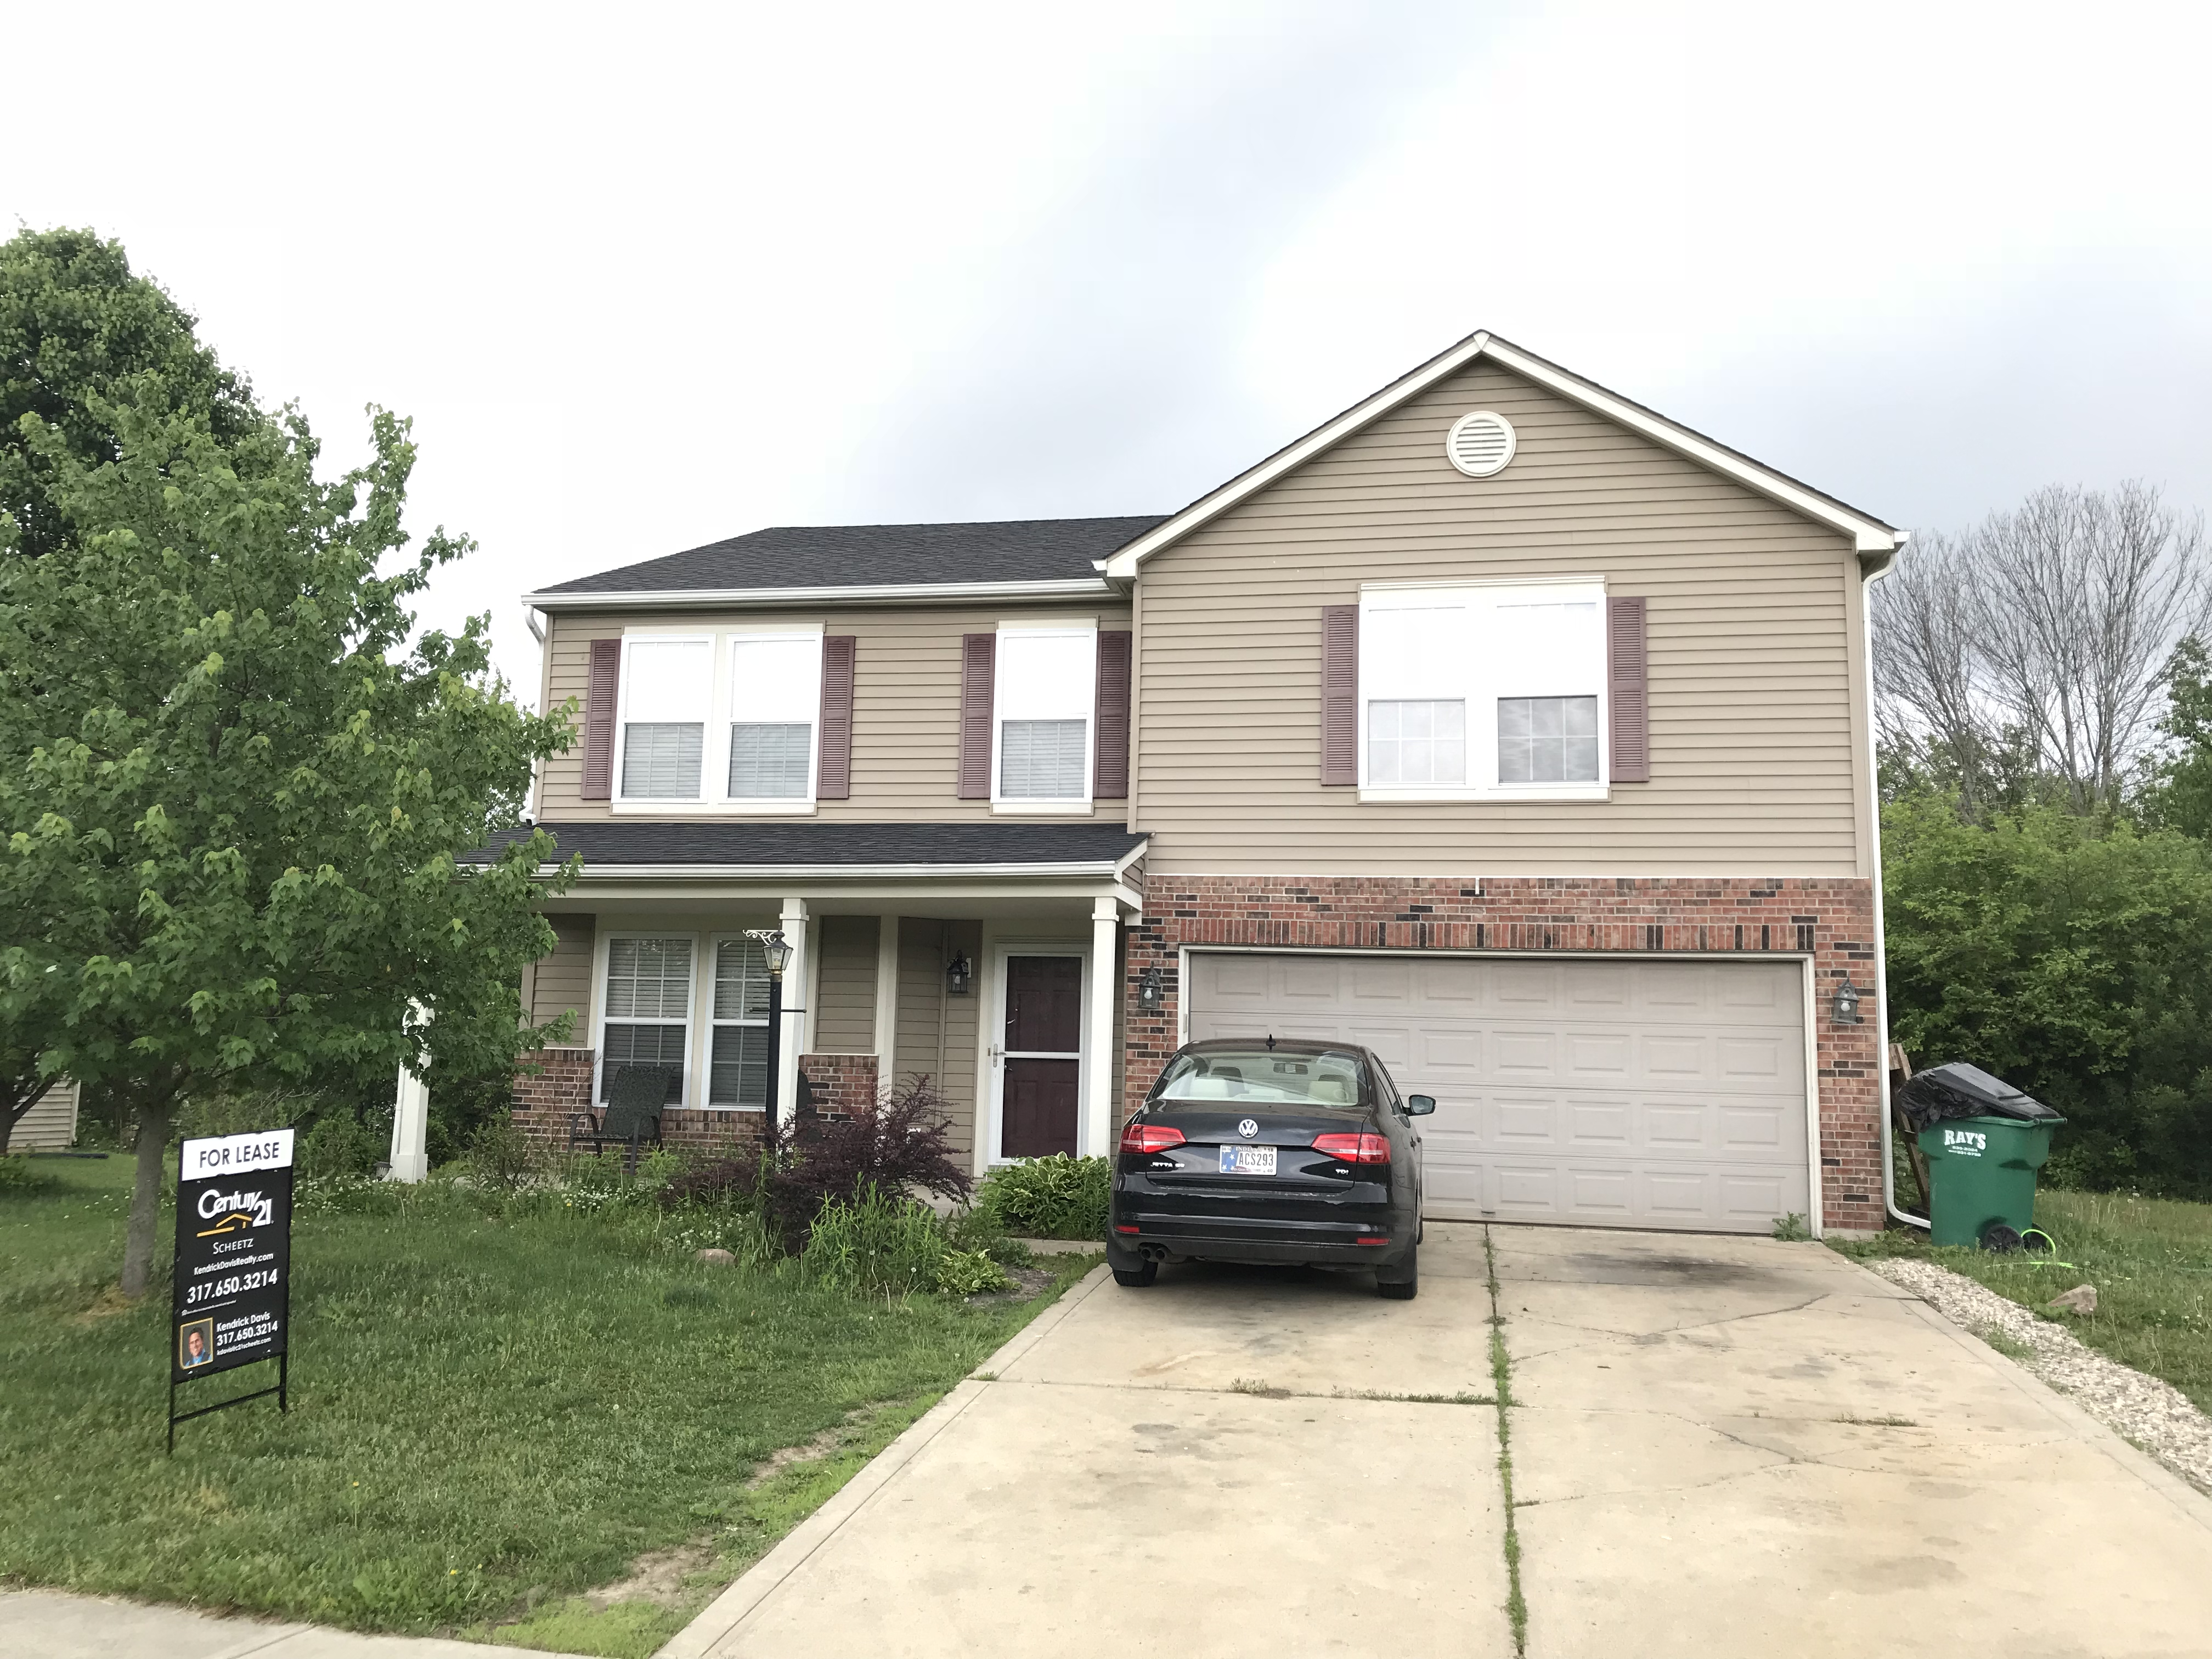 Photo of 1434 Ripplewood Dr, Danville, IN, 46122